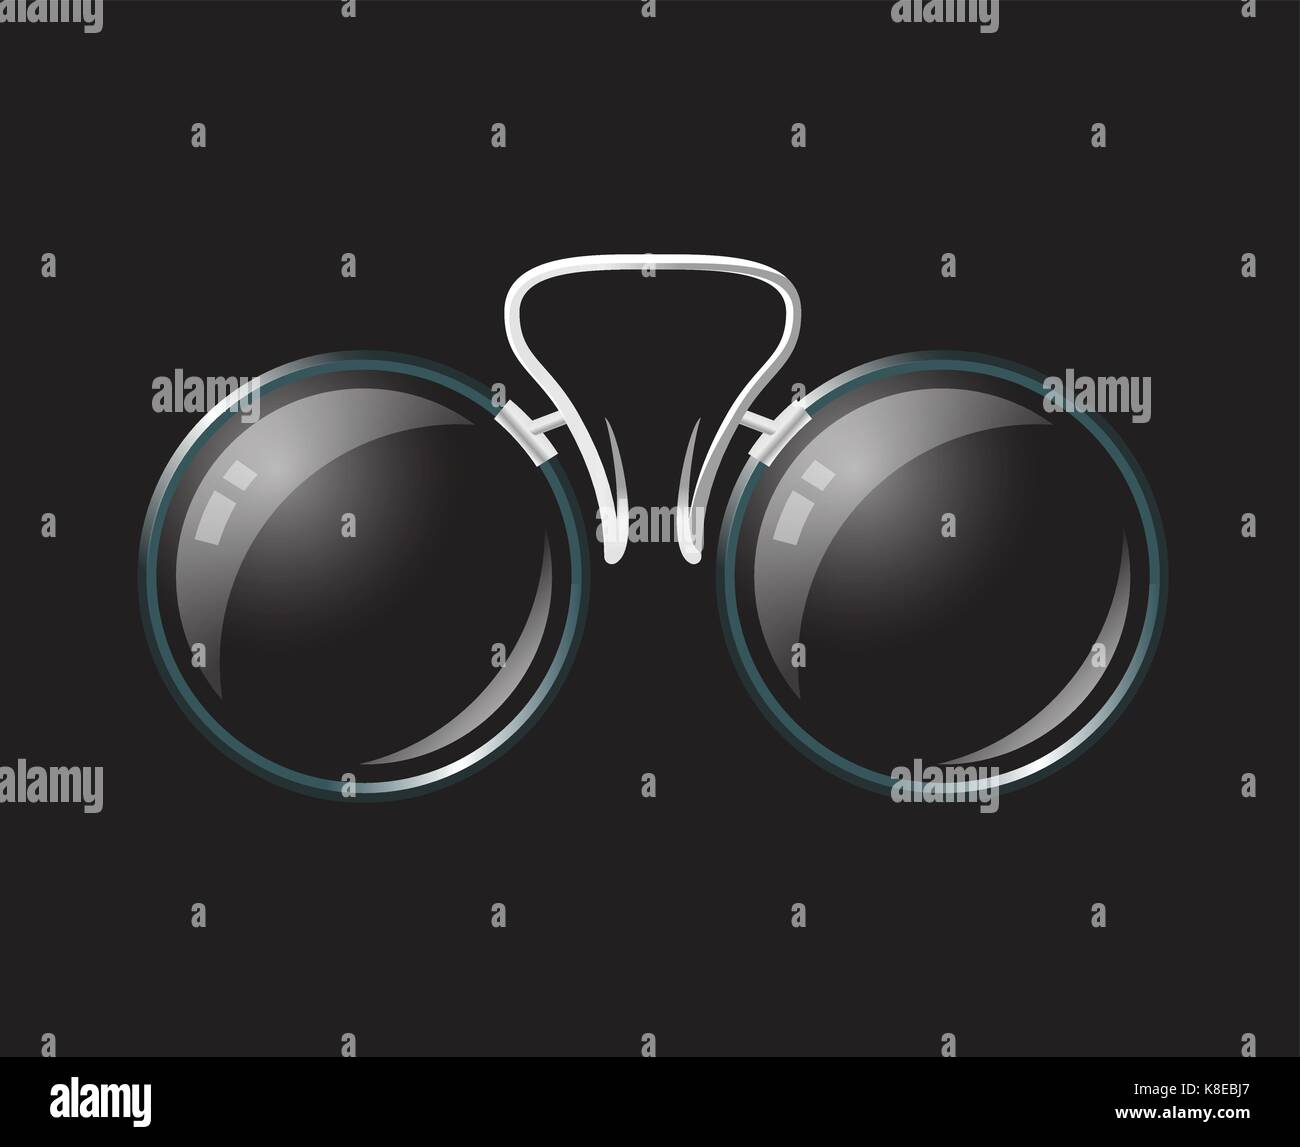 6298bfde89d02 Vintage eyeglasses pince-nez - modern vector realistic isolated object  illustration on black background. Use this high quality clip art for  presentati